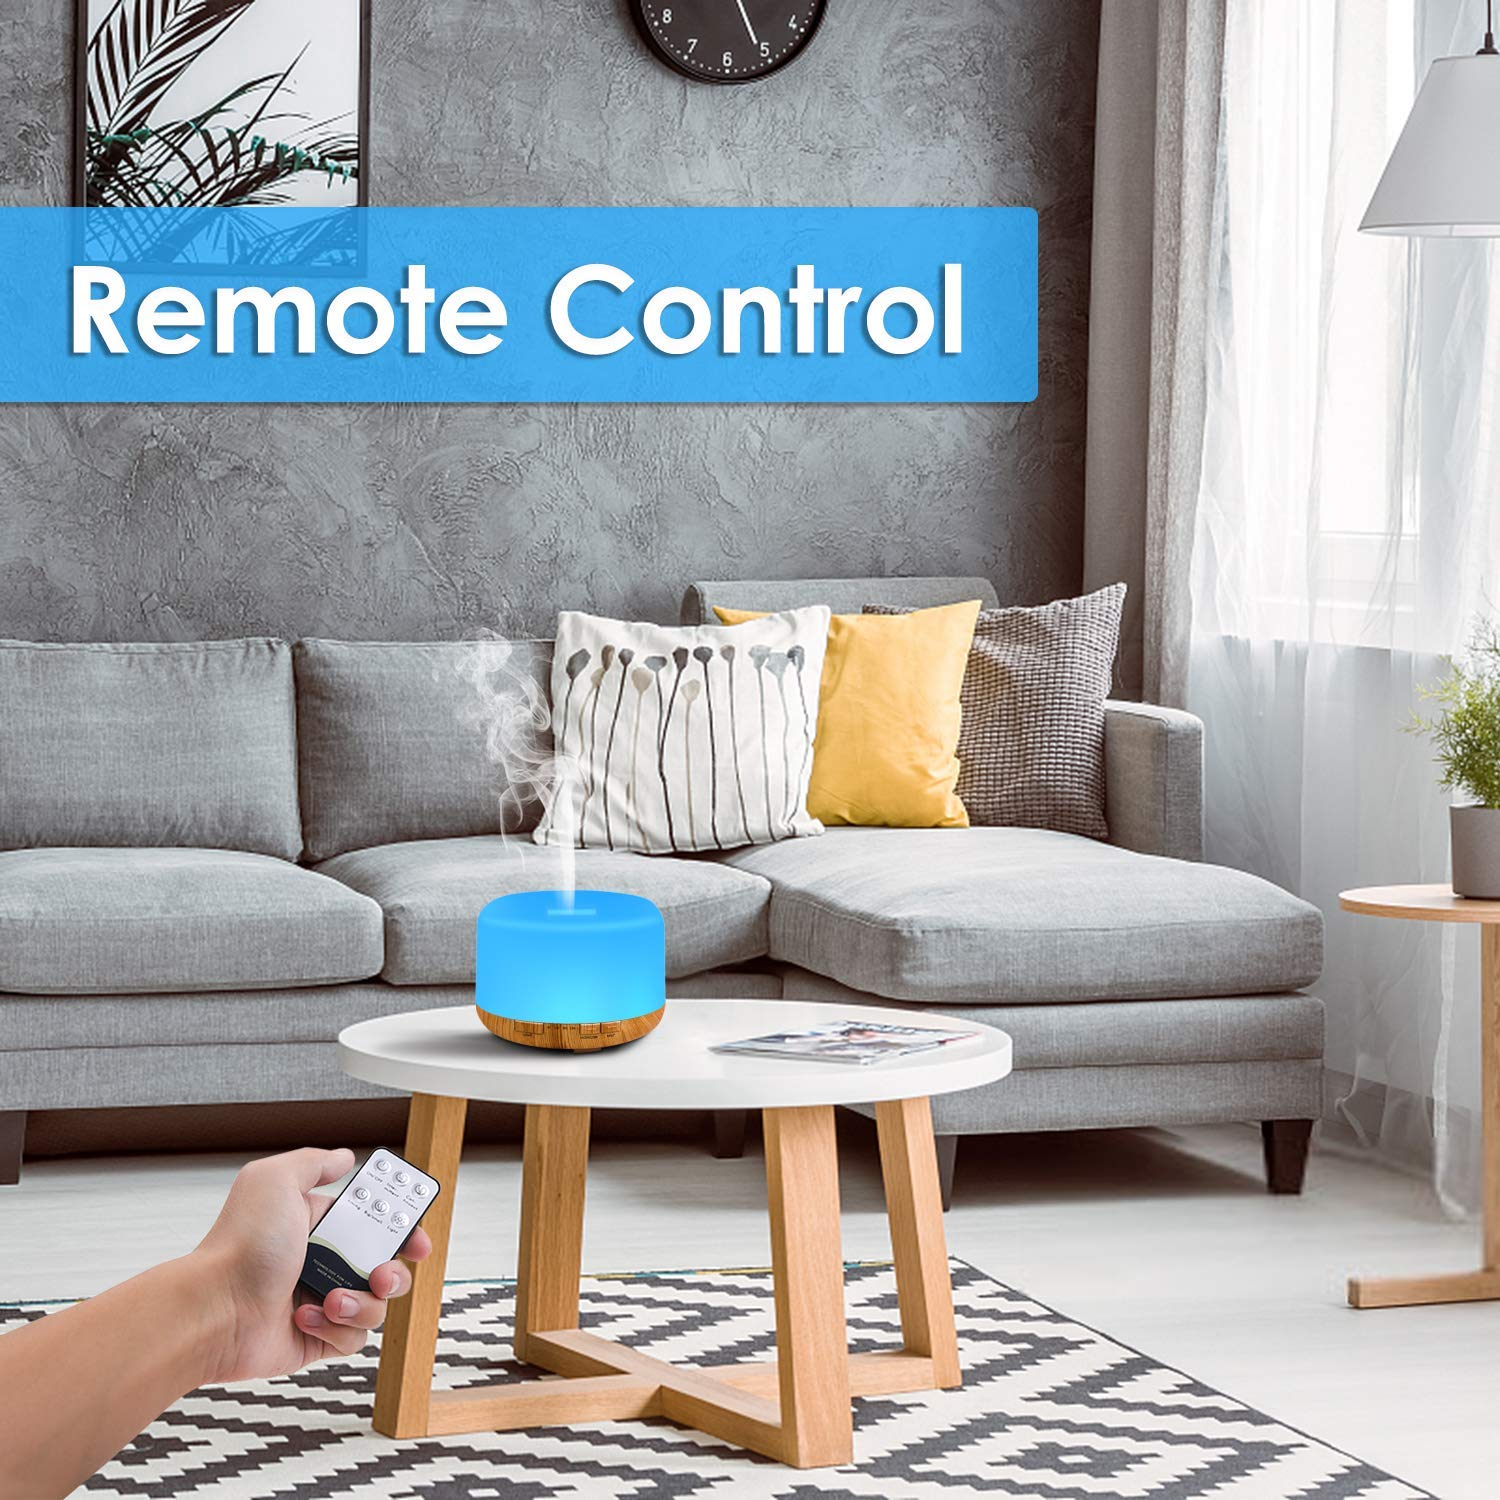 RENWER Essential Oil Diffuser, 500ml Remote Control Diffusers for Essential oils, Ultrasonic Humidifier, Aromatherapy Diffuser with 7 Color LED Lights & Waterless Auto-Off : Beauty